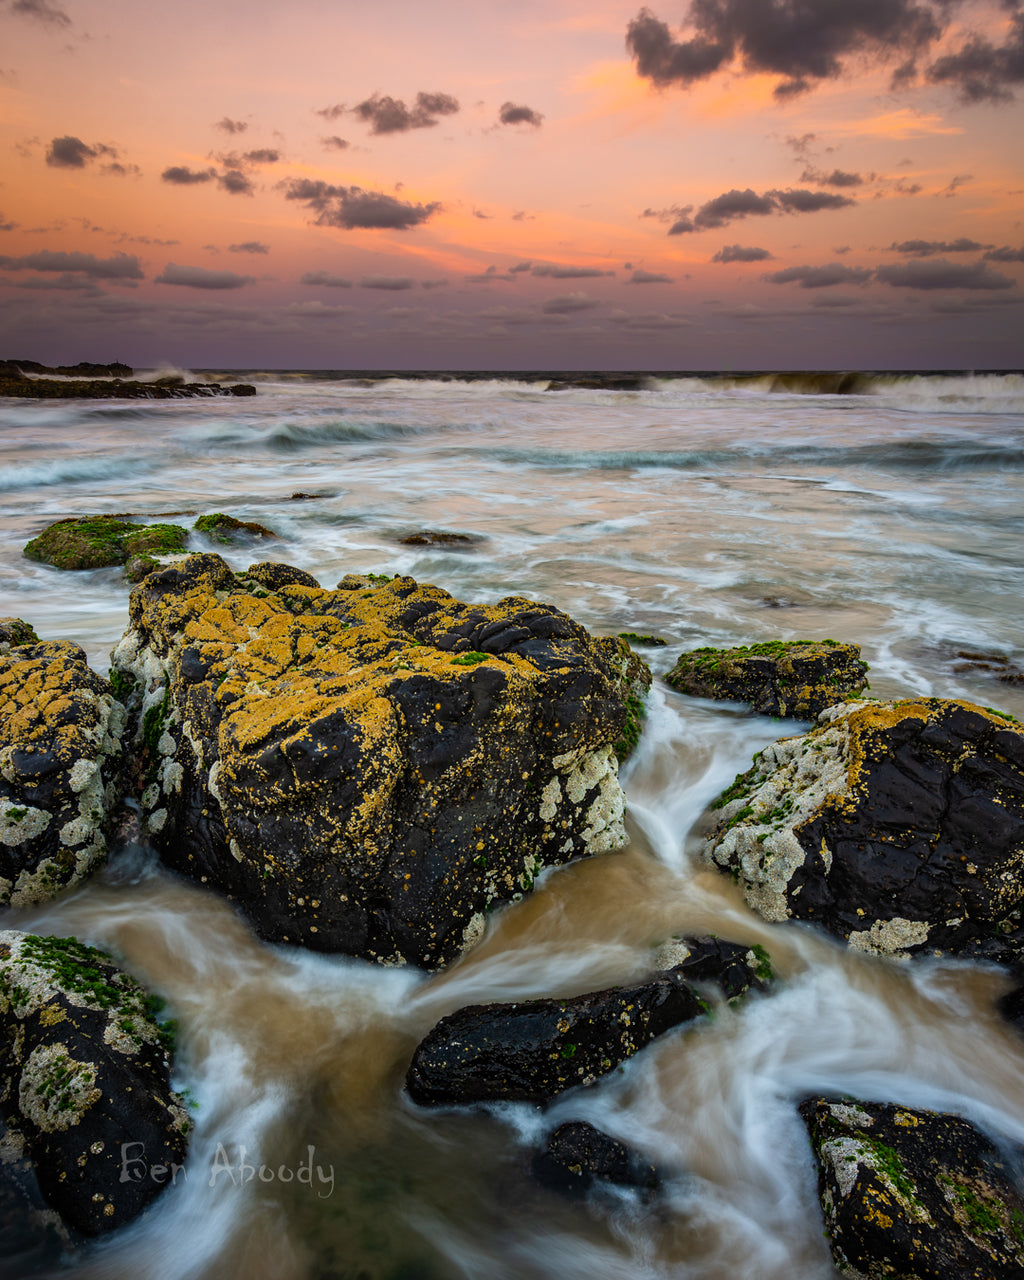 Boulders Rocks - Ben Aboody Photography